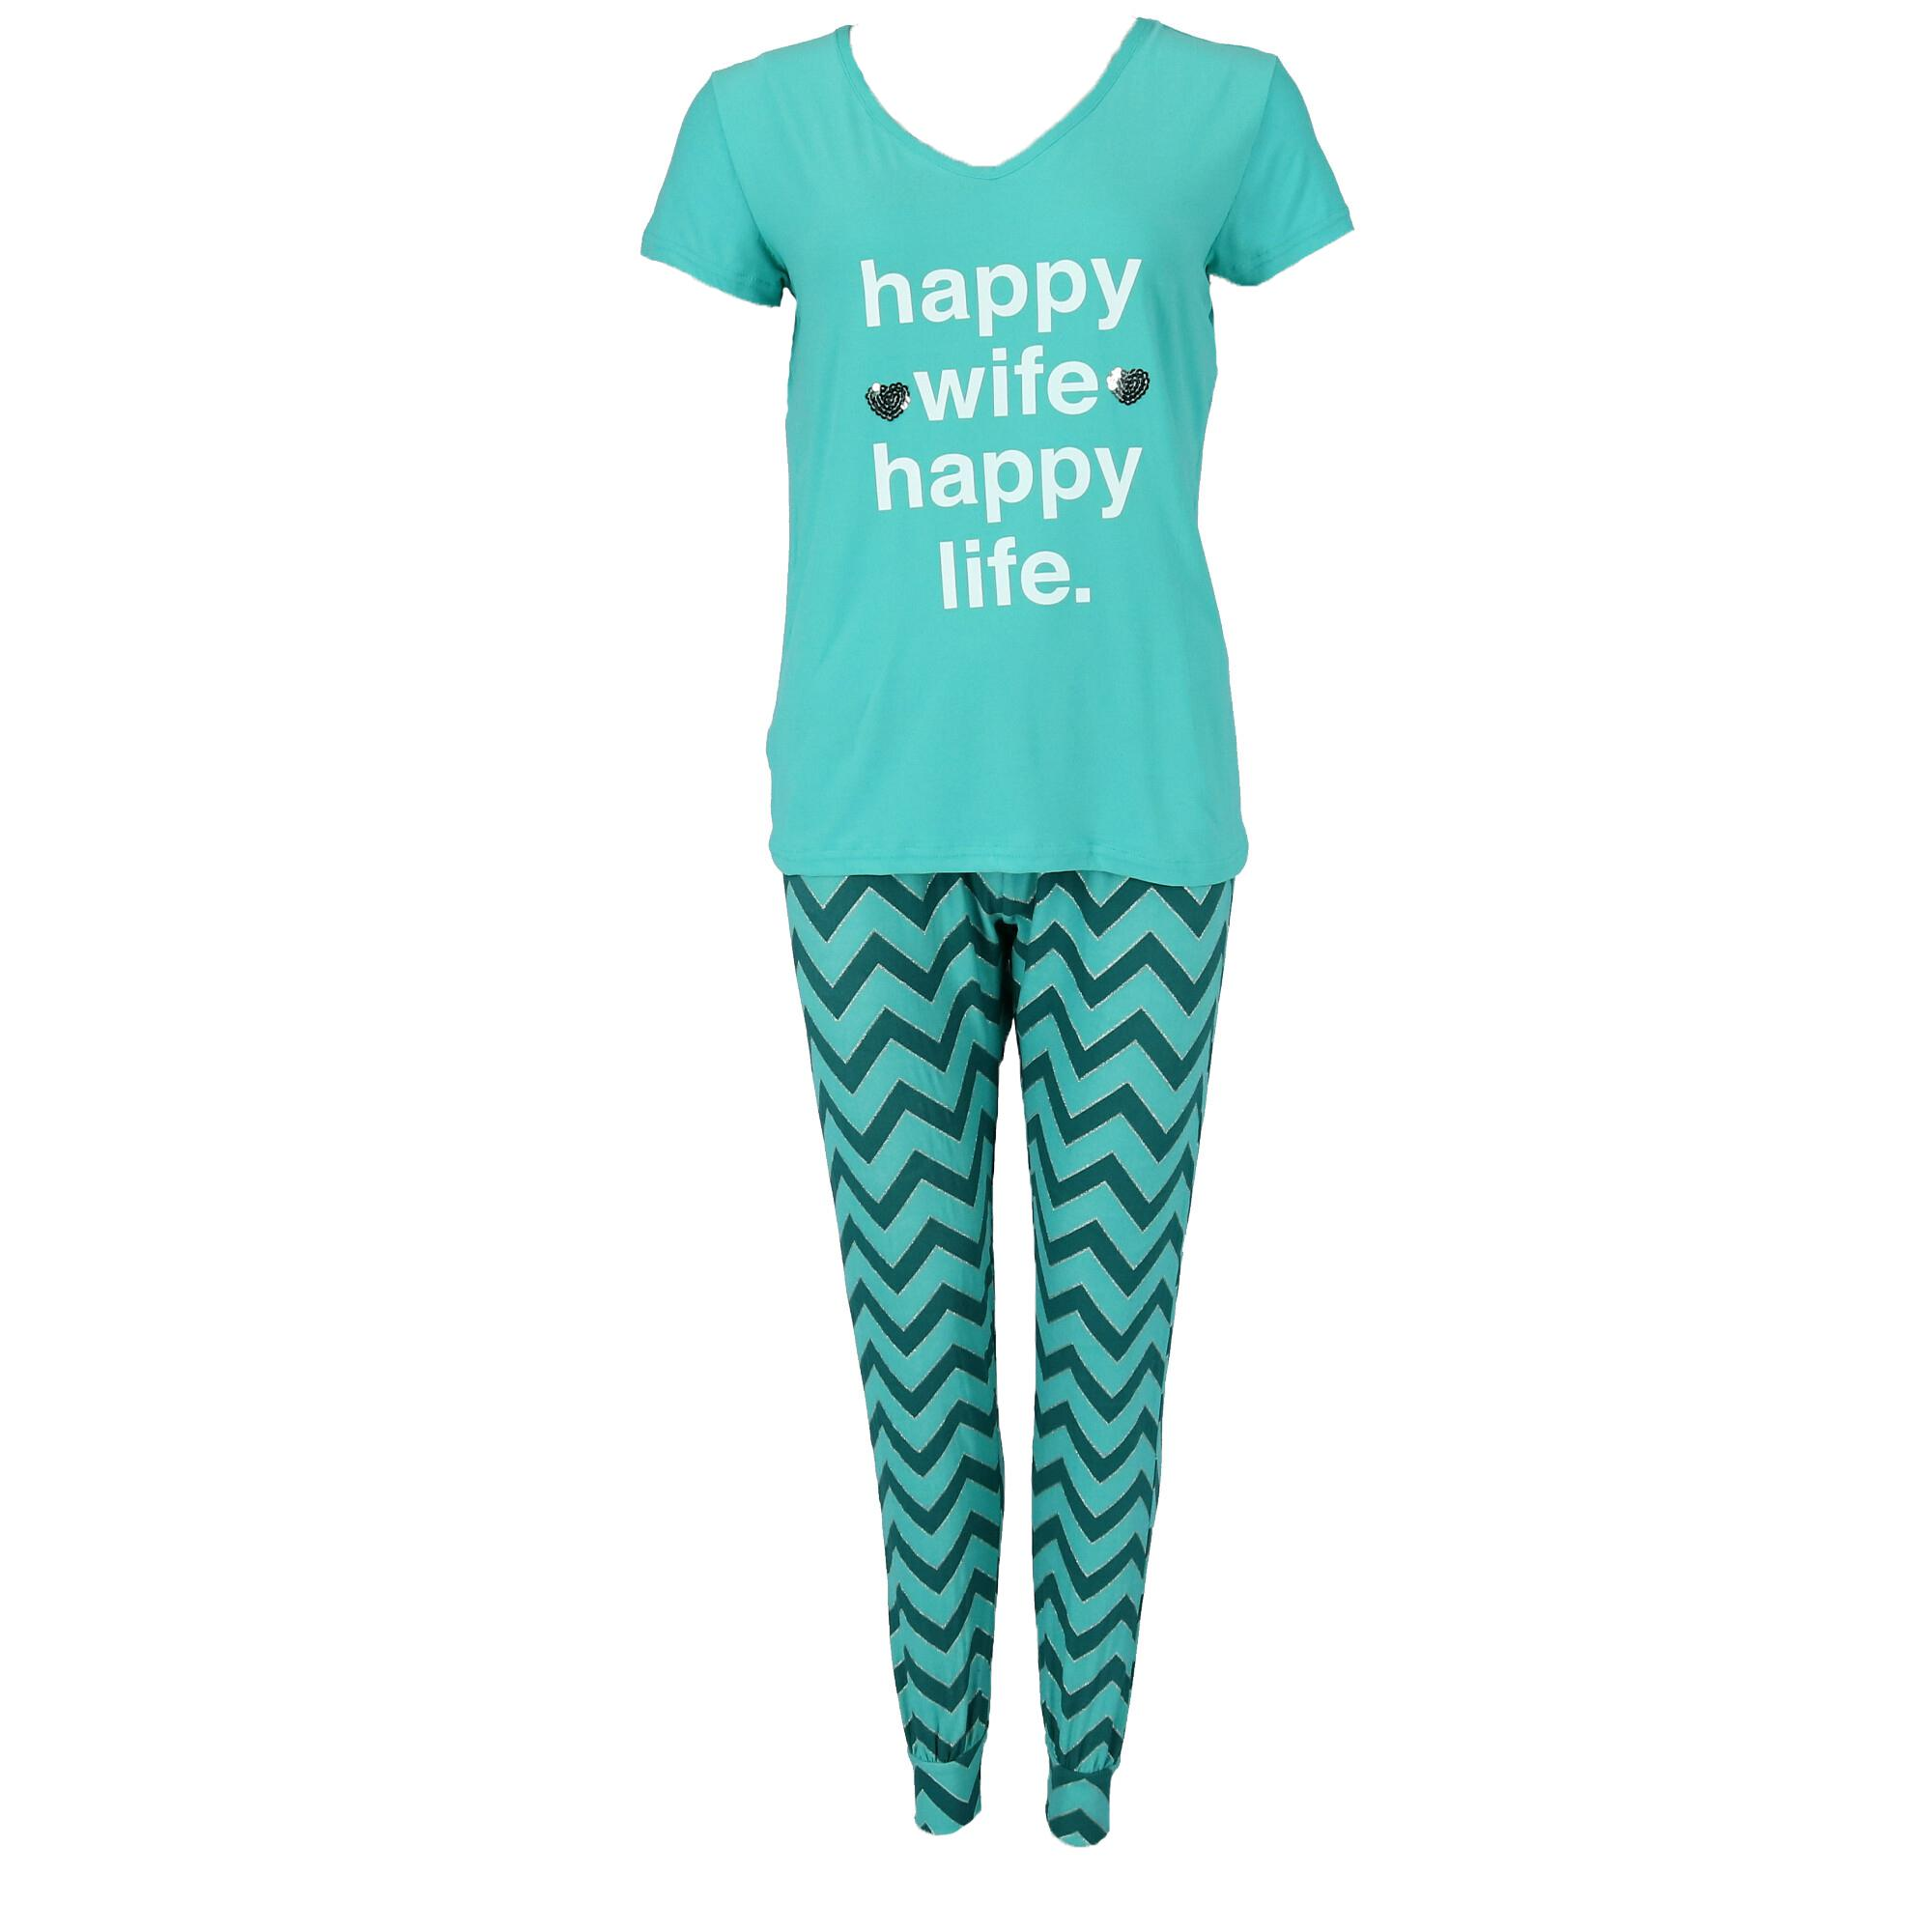 Not a Morning Person Women's Plus Size Happy Wife Tee and Joggers Pajama Set - image 4 of 4